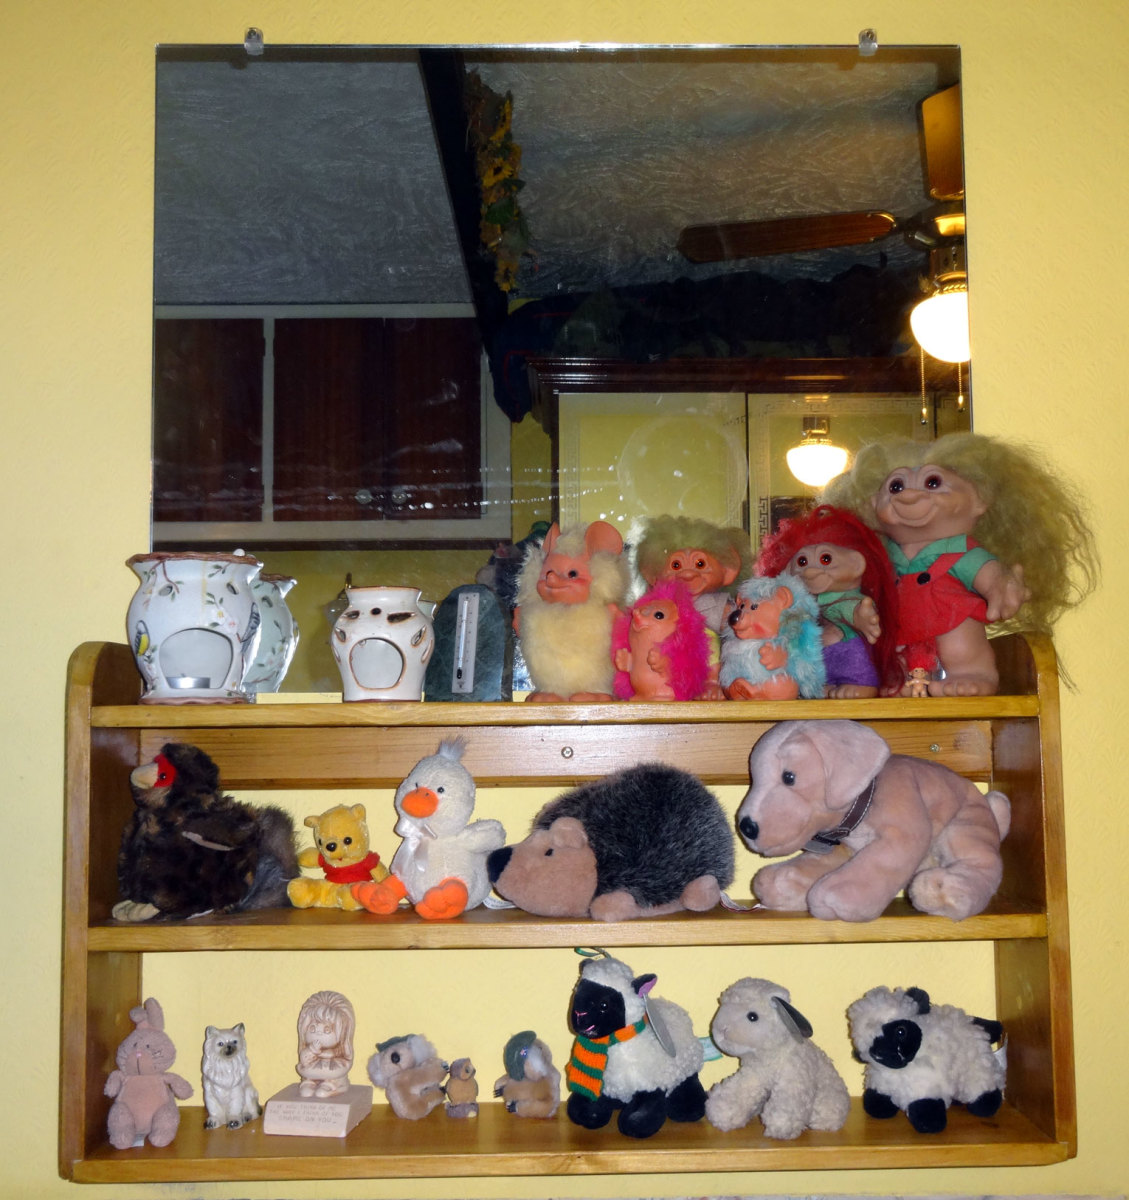 Shelving unit for wall mounted mirror